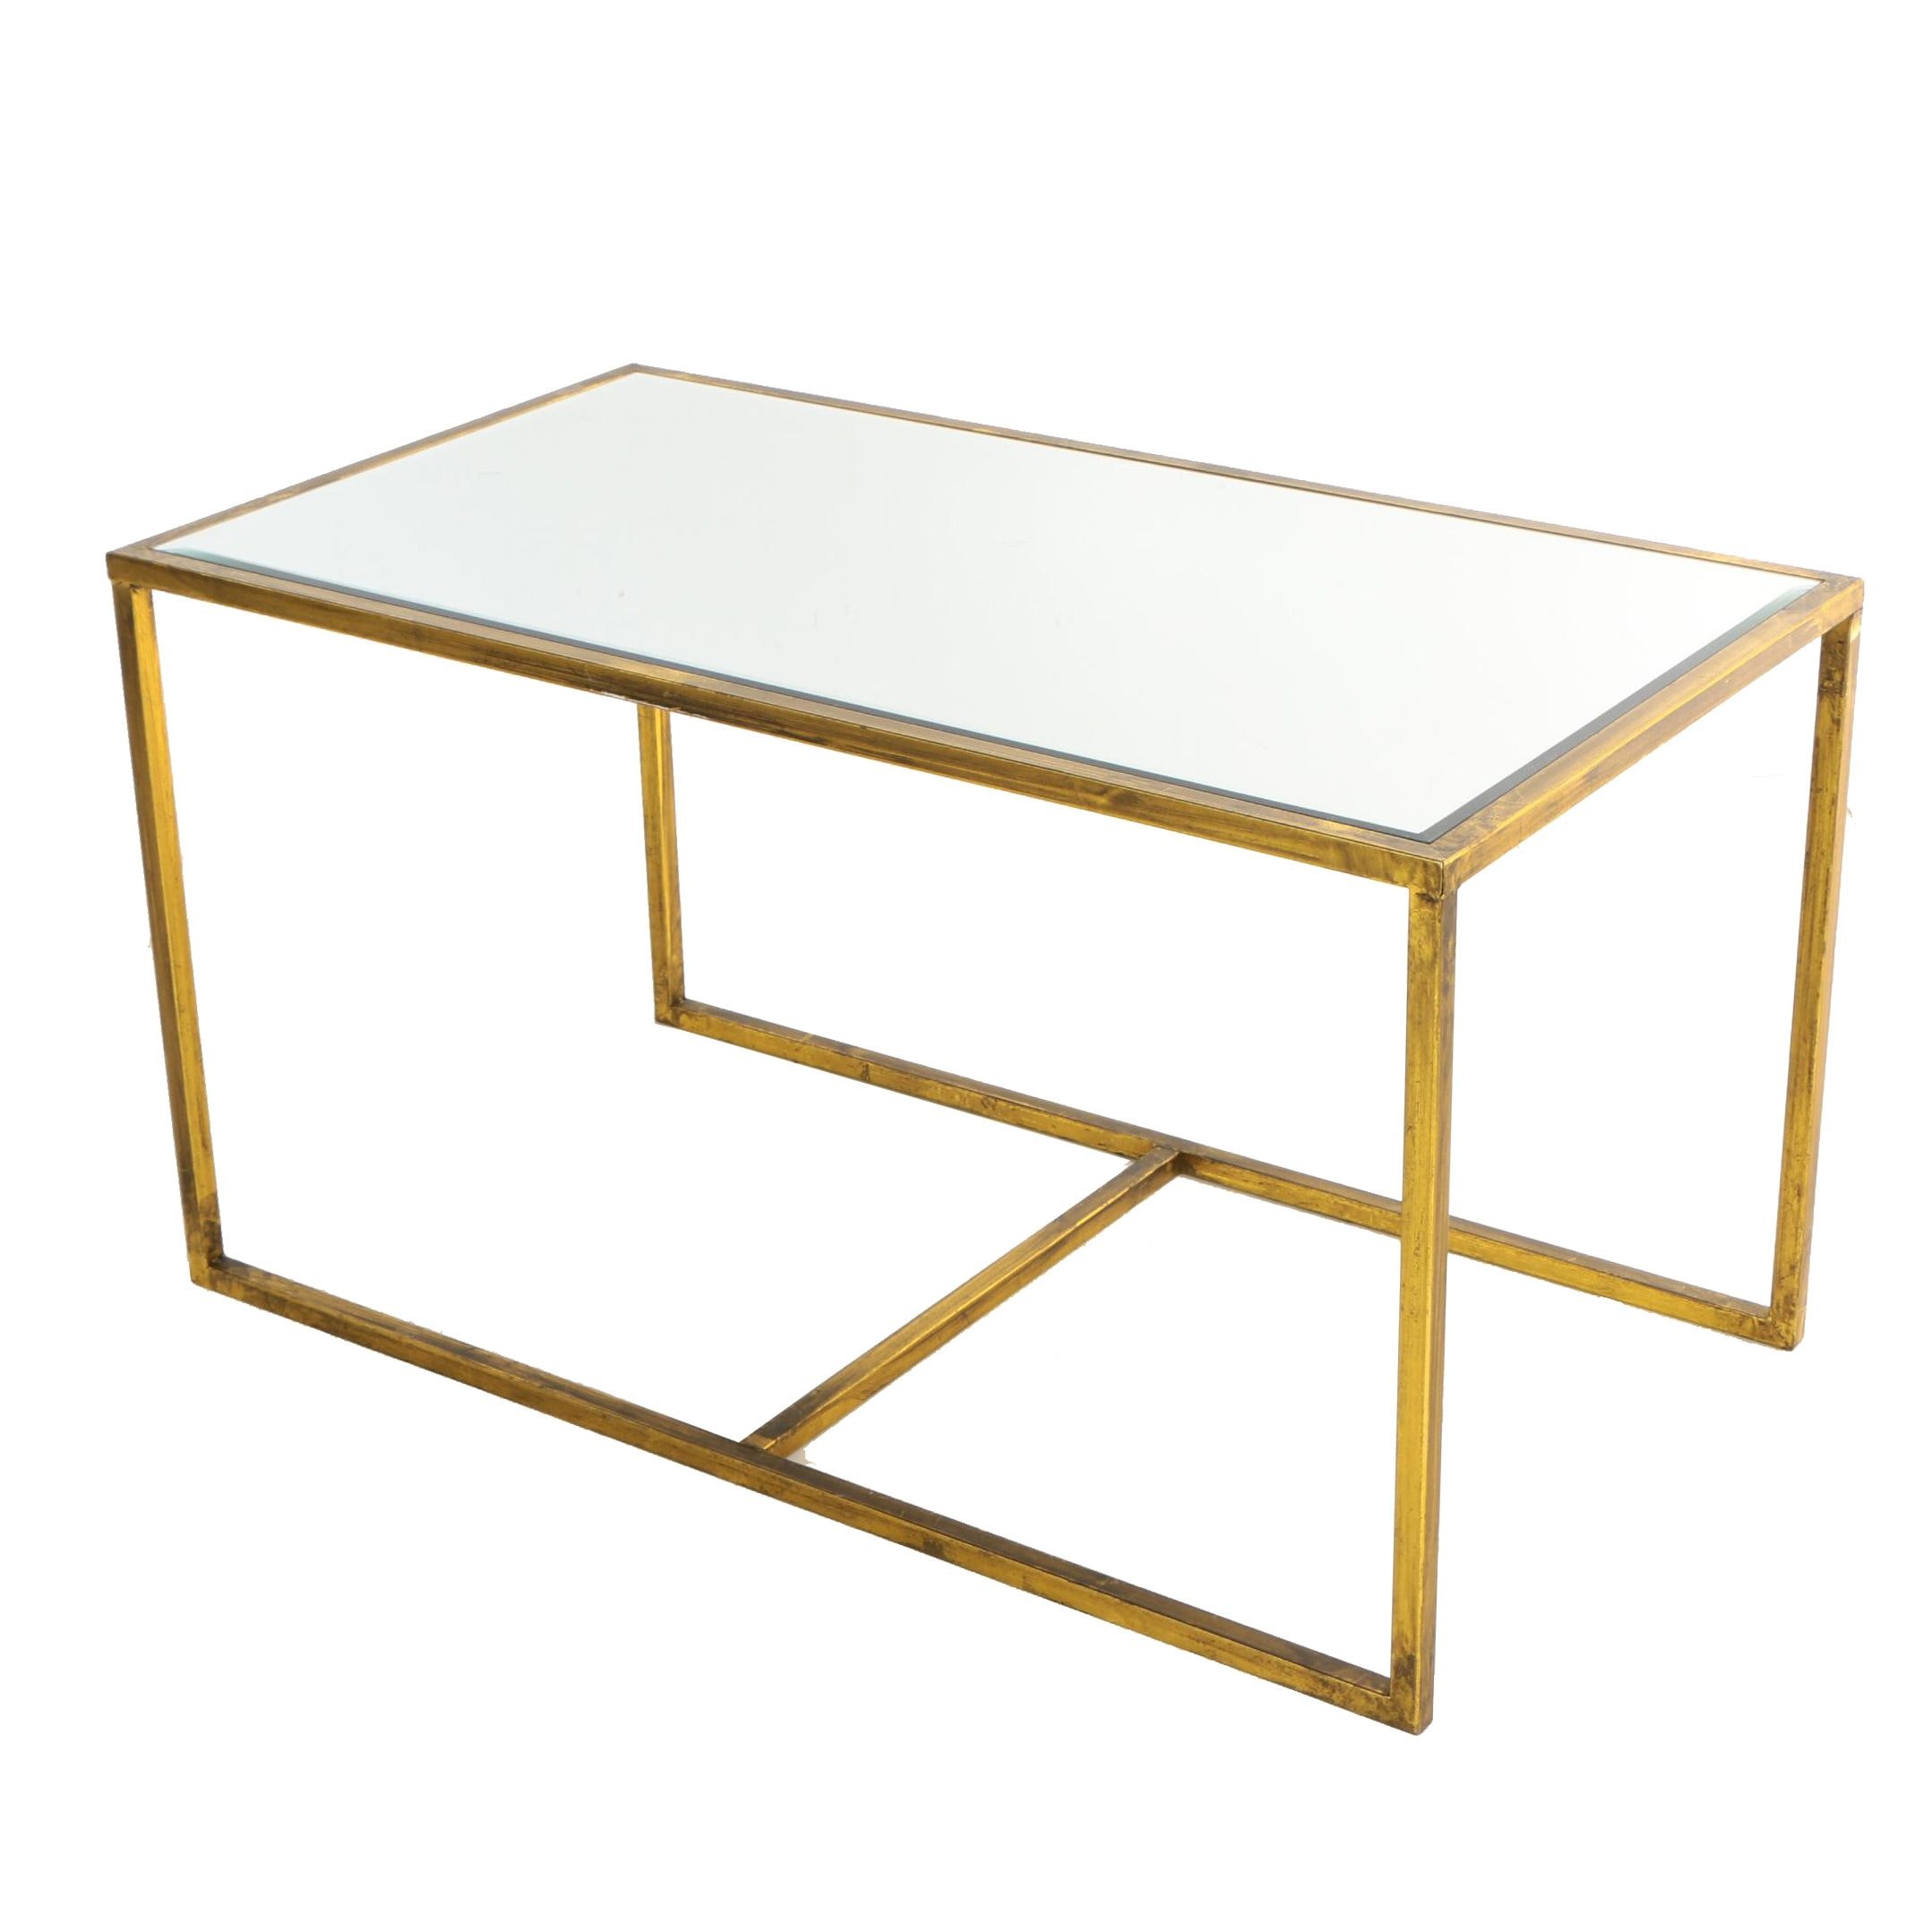 Contemporary Gilt-Metal and Mirror-Topped Coffee Table